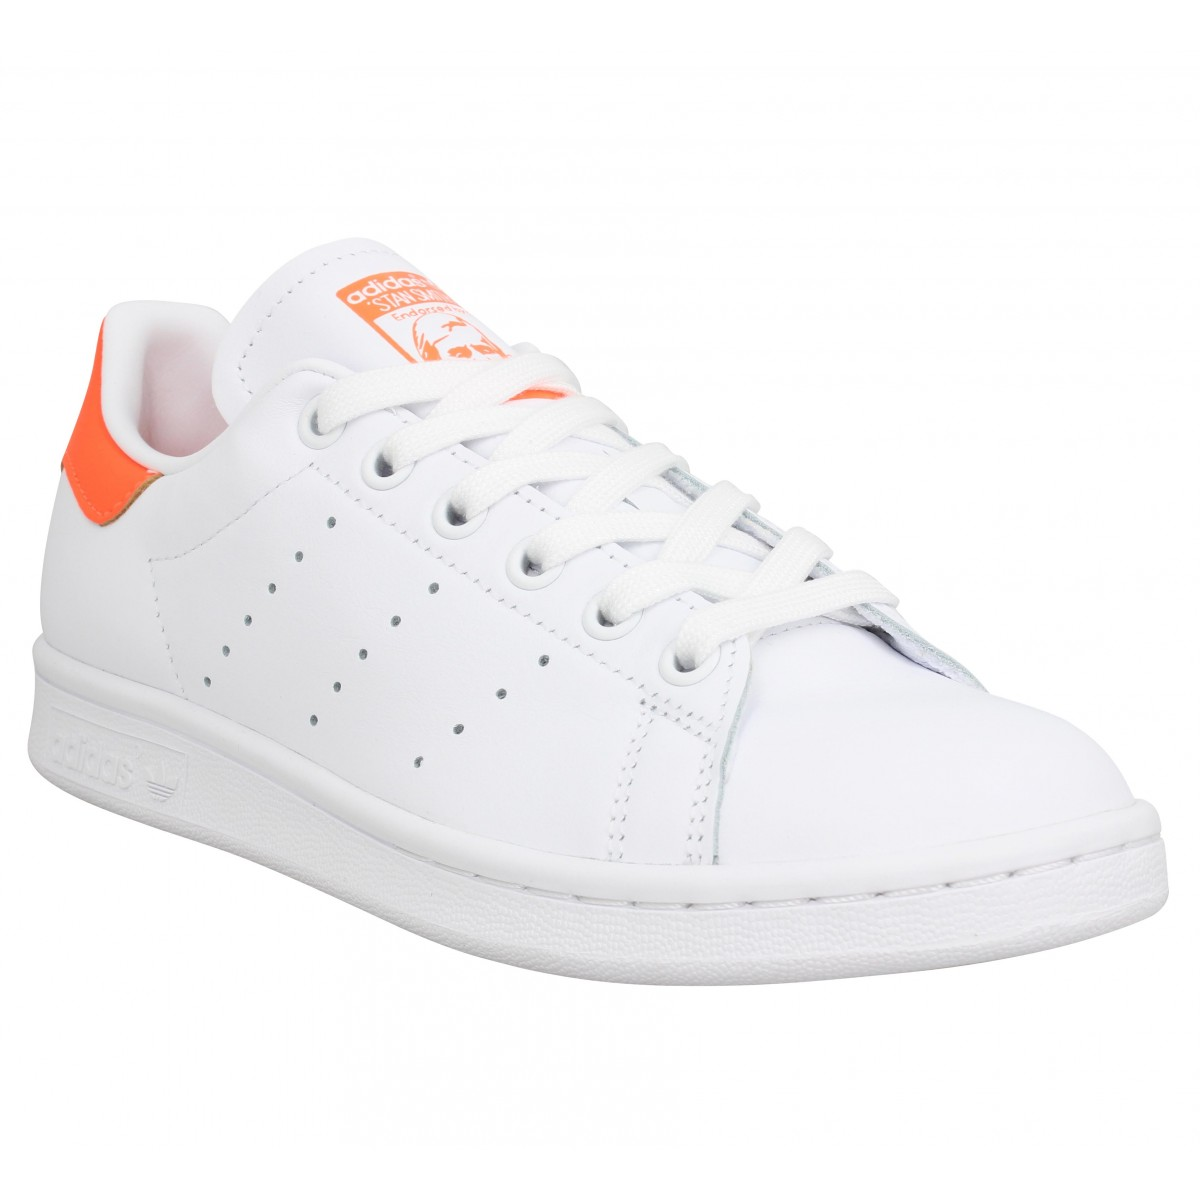 Baskets ADIDAS Stan Smith cuir Femme Blanc Orange